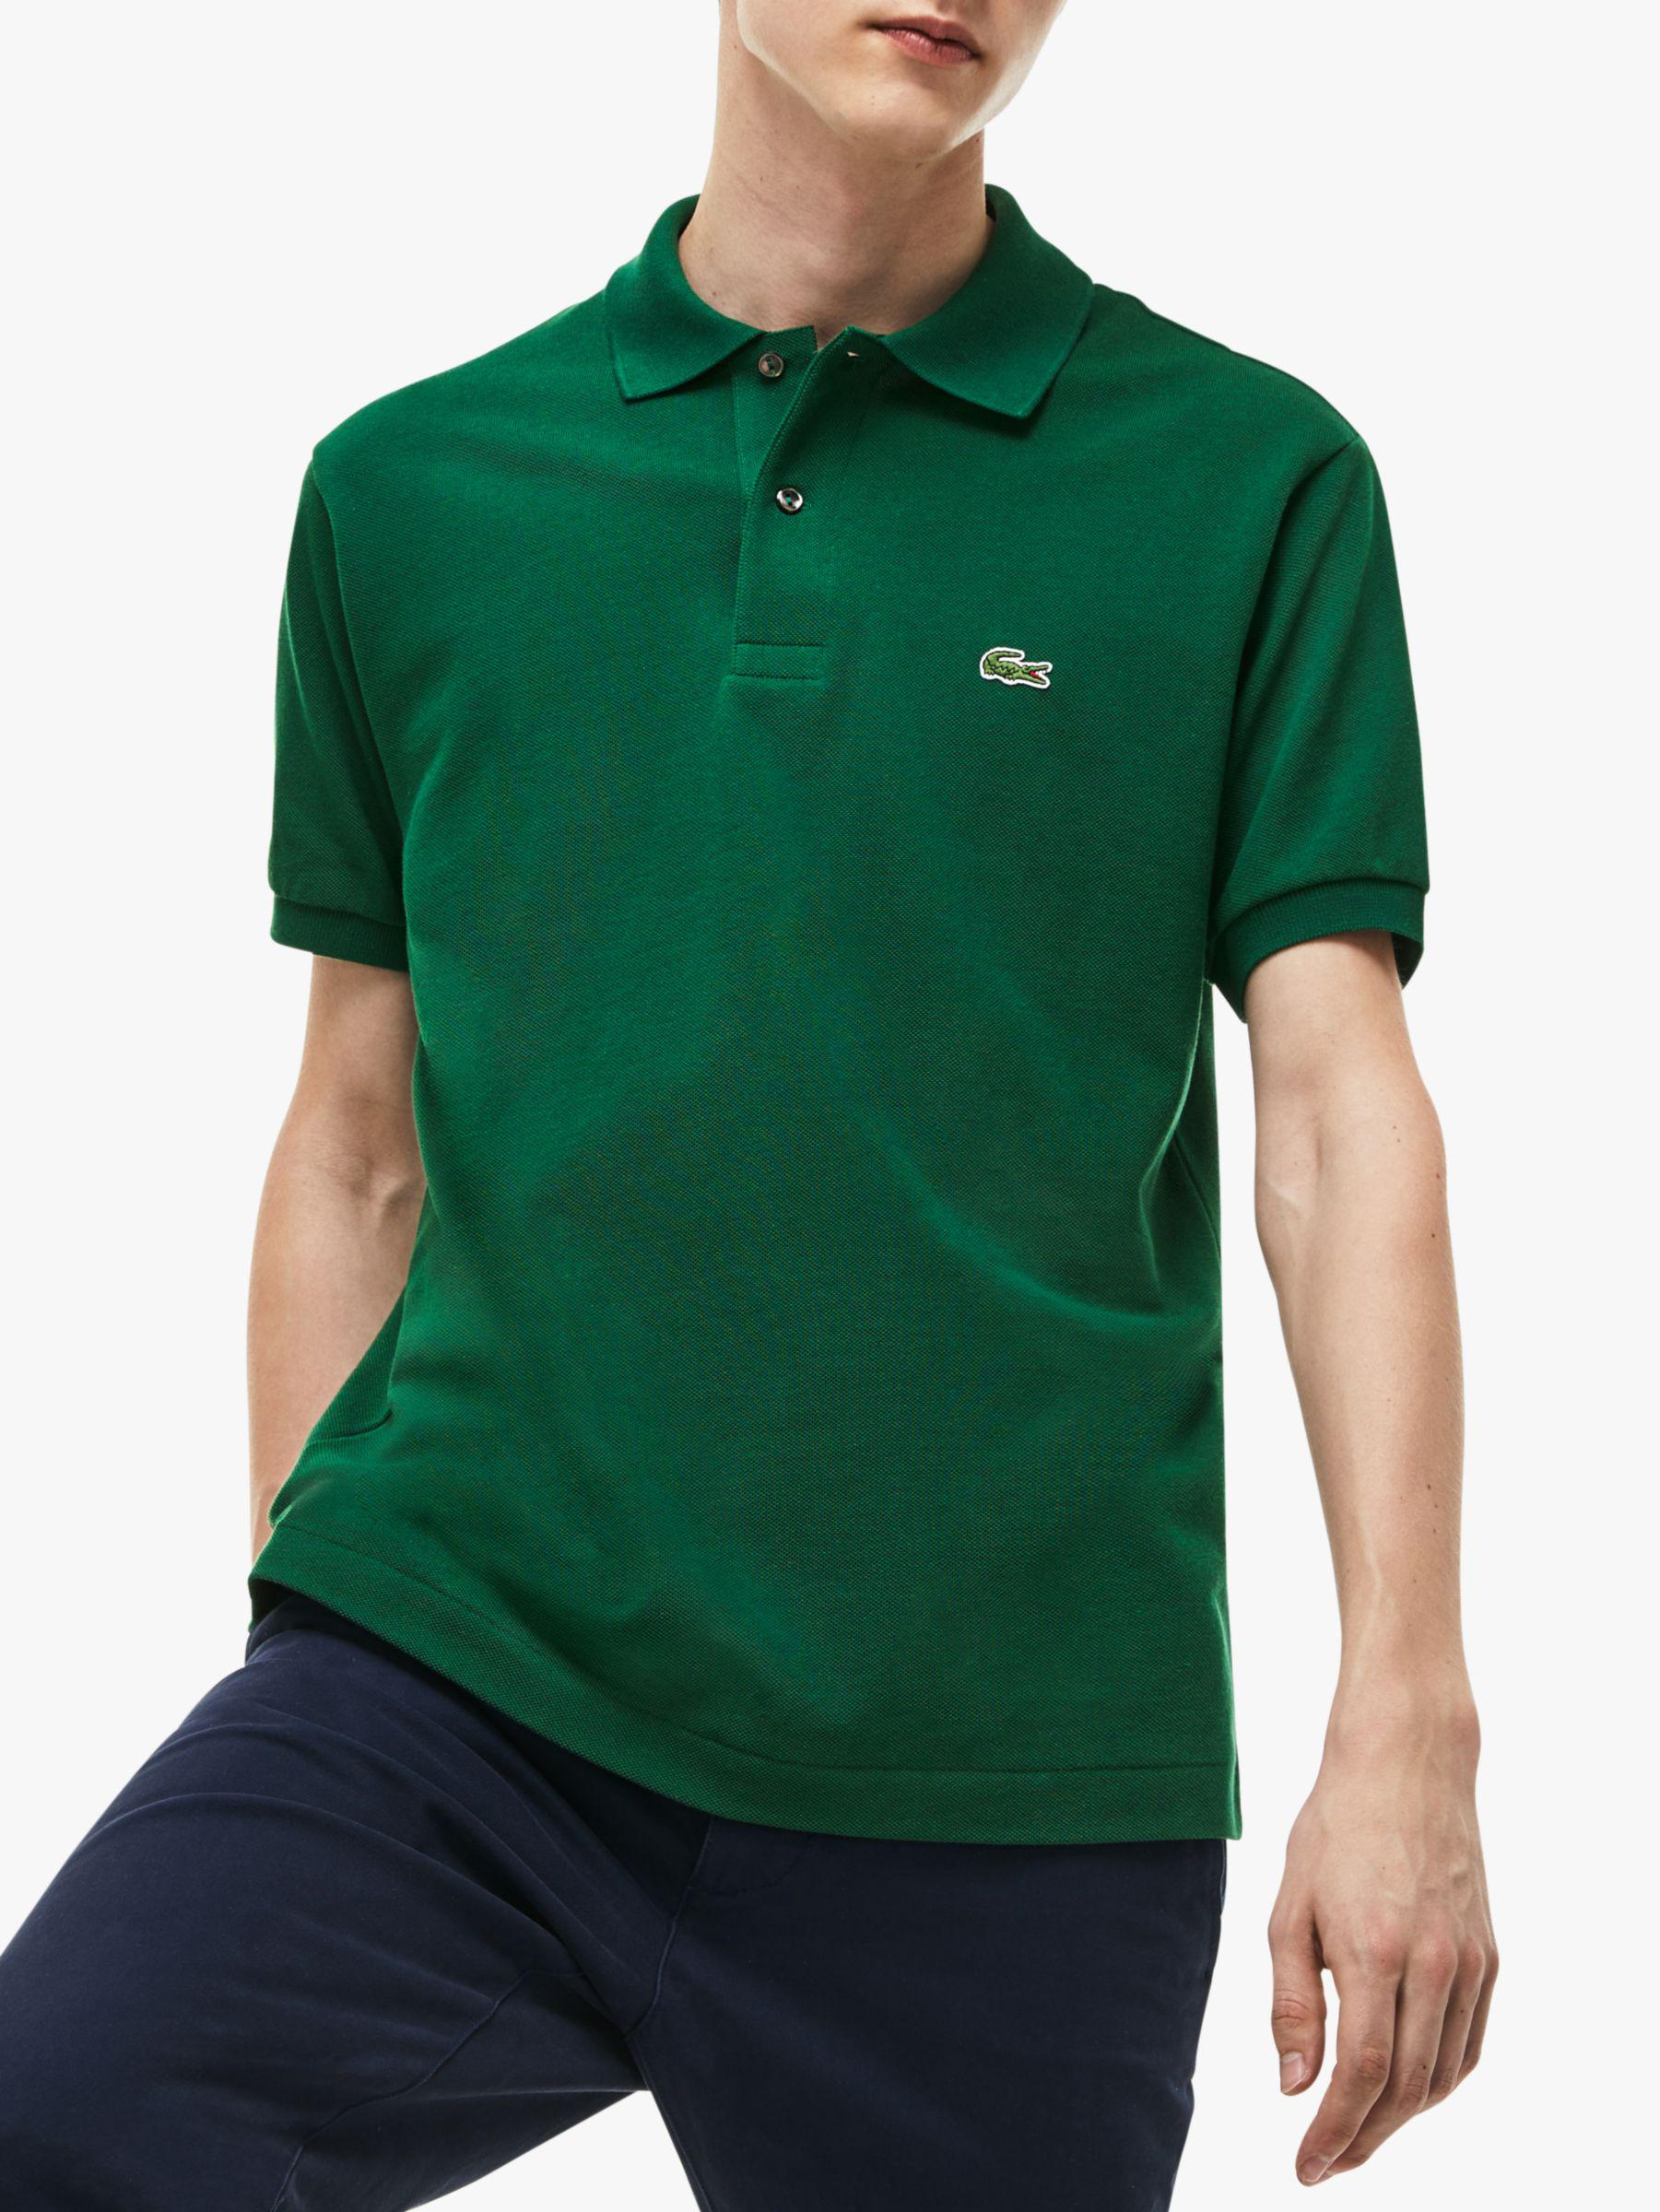 852ce25e Lacoste. Men's Green L.12.12 Classic Regular Fit Short Sleeve Polo Shirt.  £79 From John Lewis ...